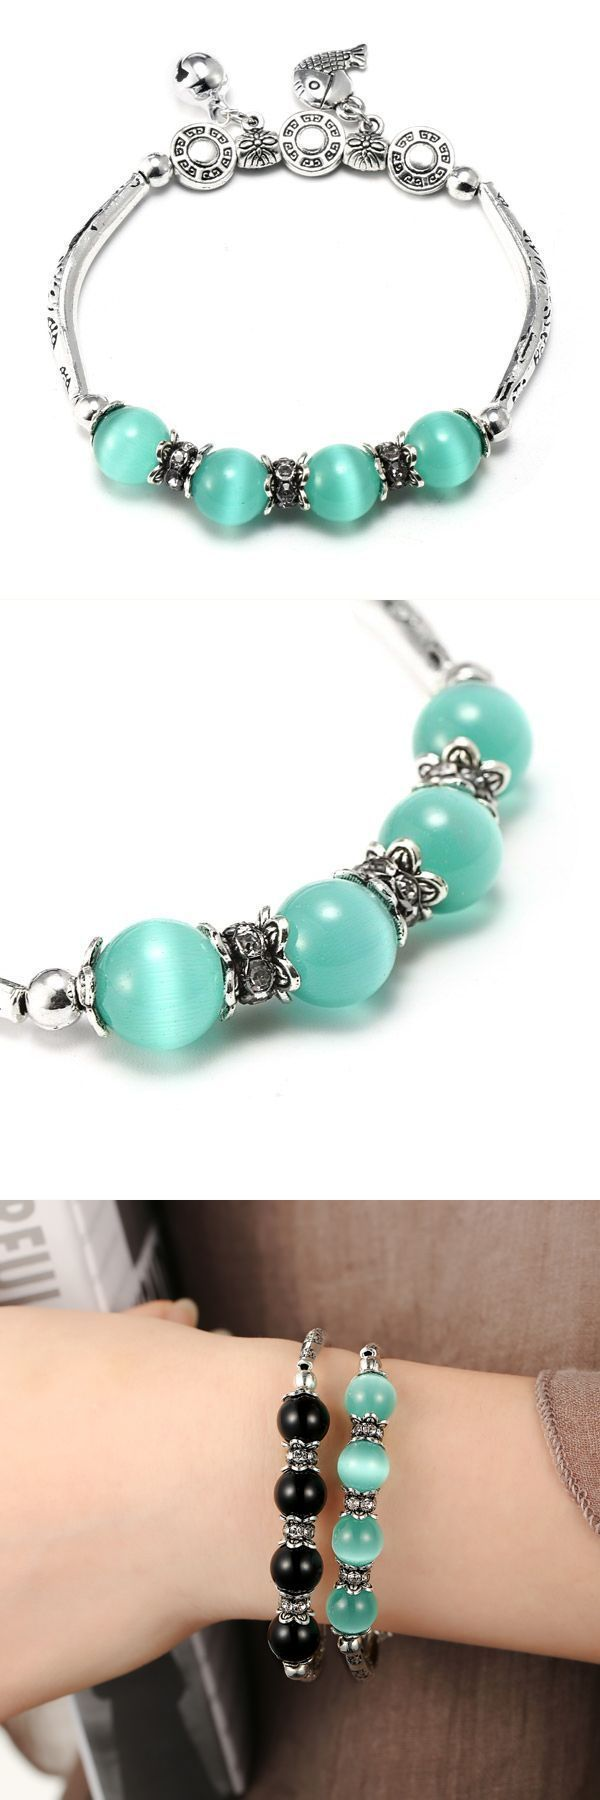 Elastic silver hollow carved crystal pendant bead abacus bracelet